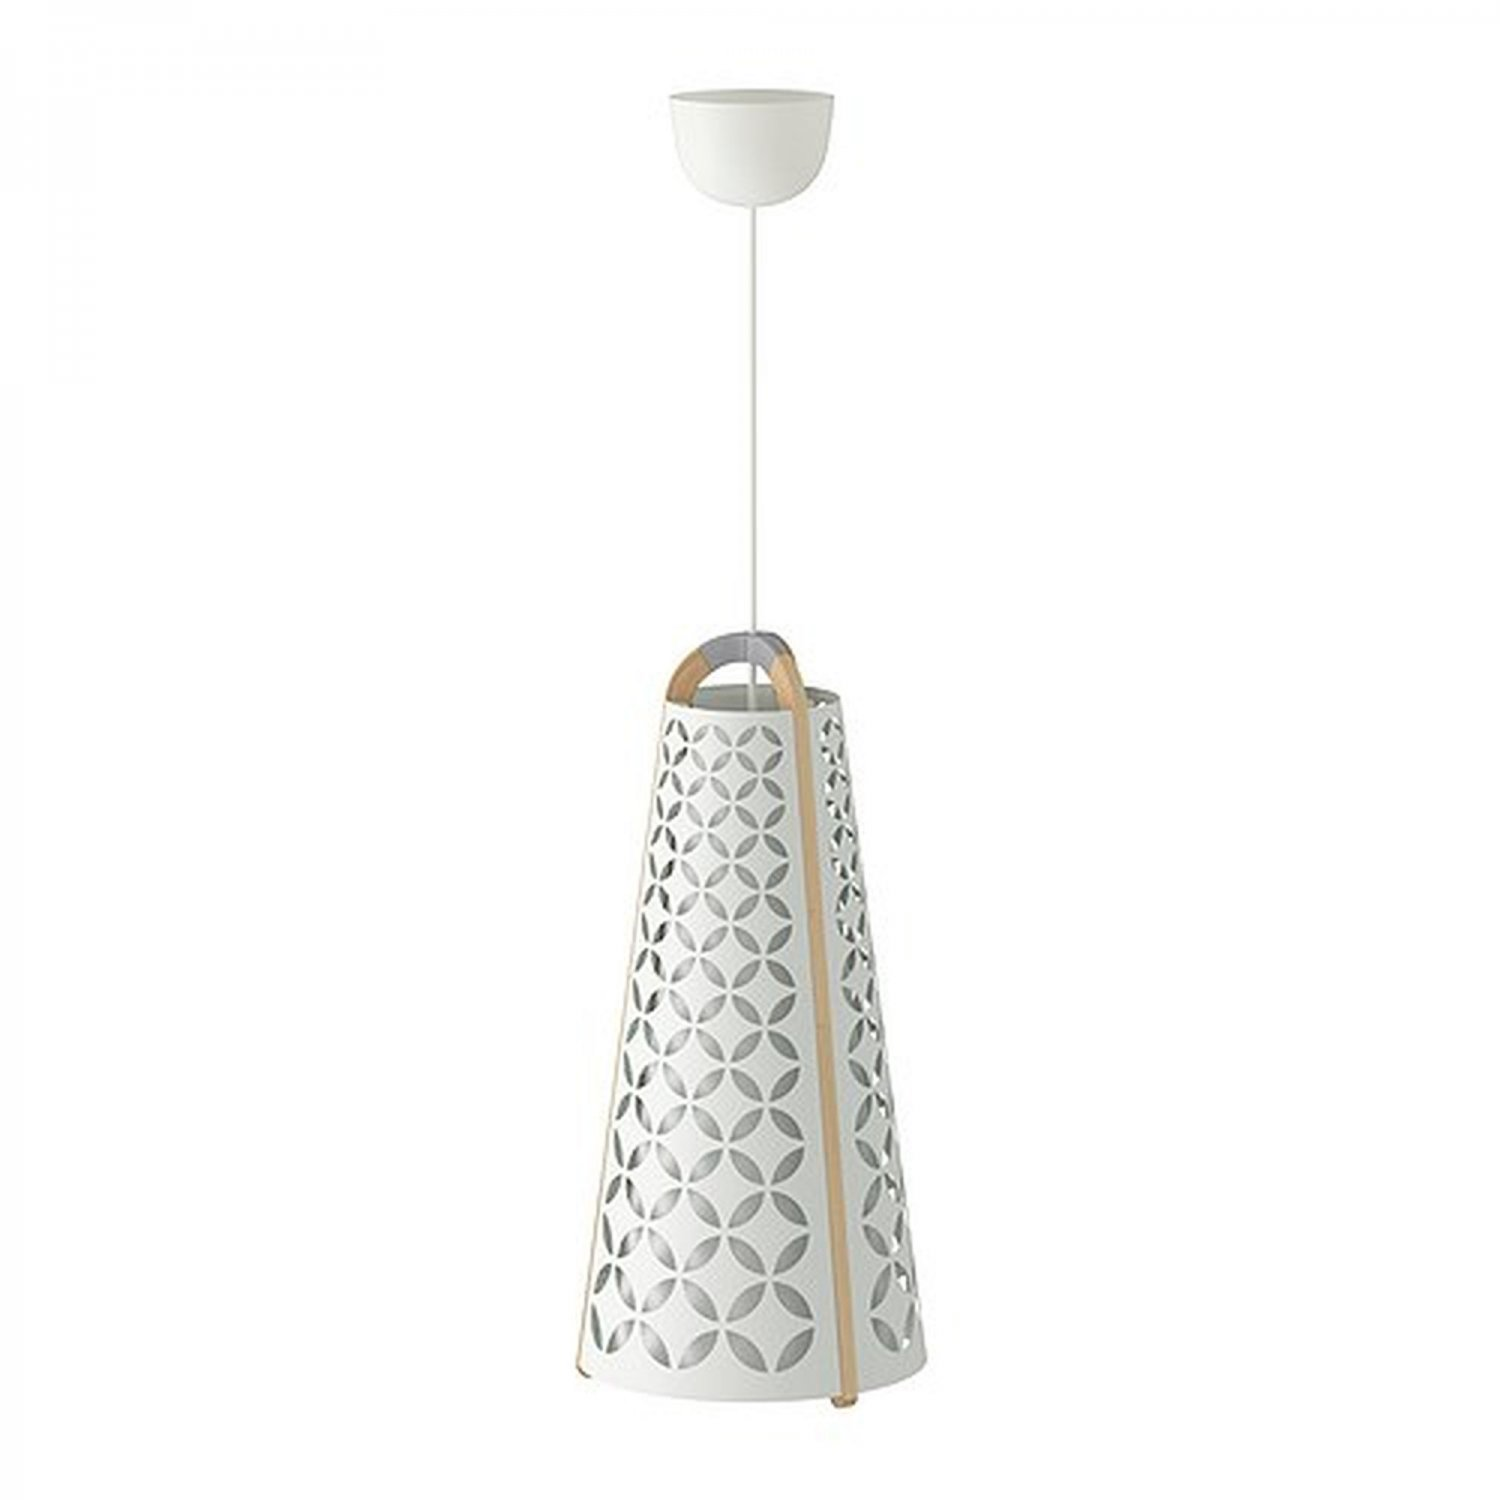 Ikea Torna Pendant Lamp Ceiling Light Modern White And Birch Wood Chandelier Contemporary